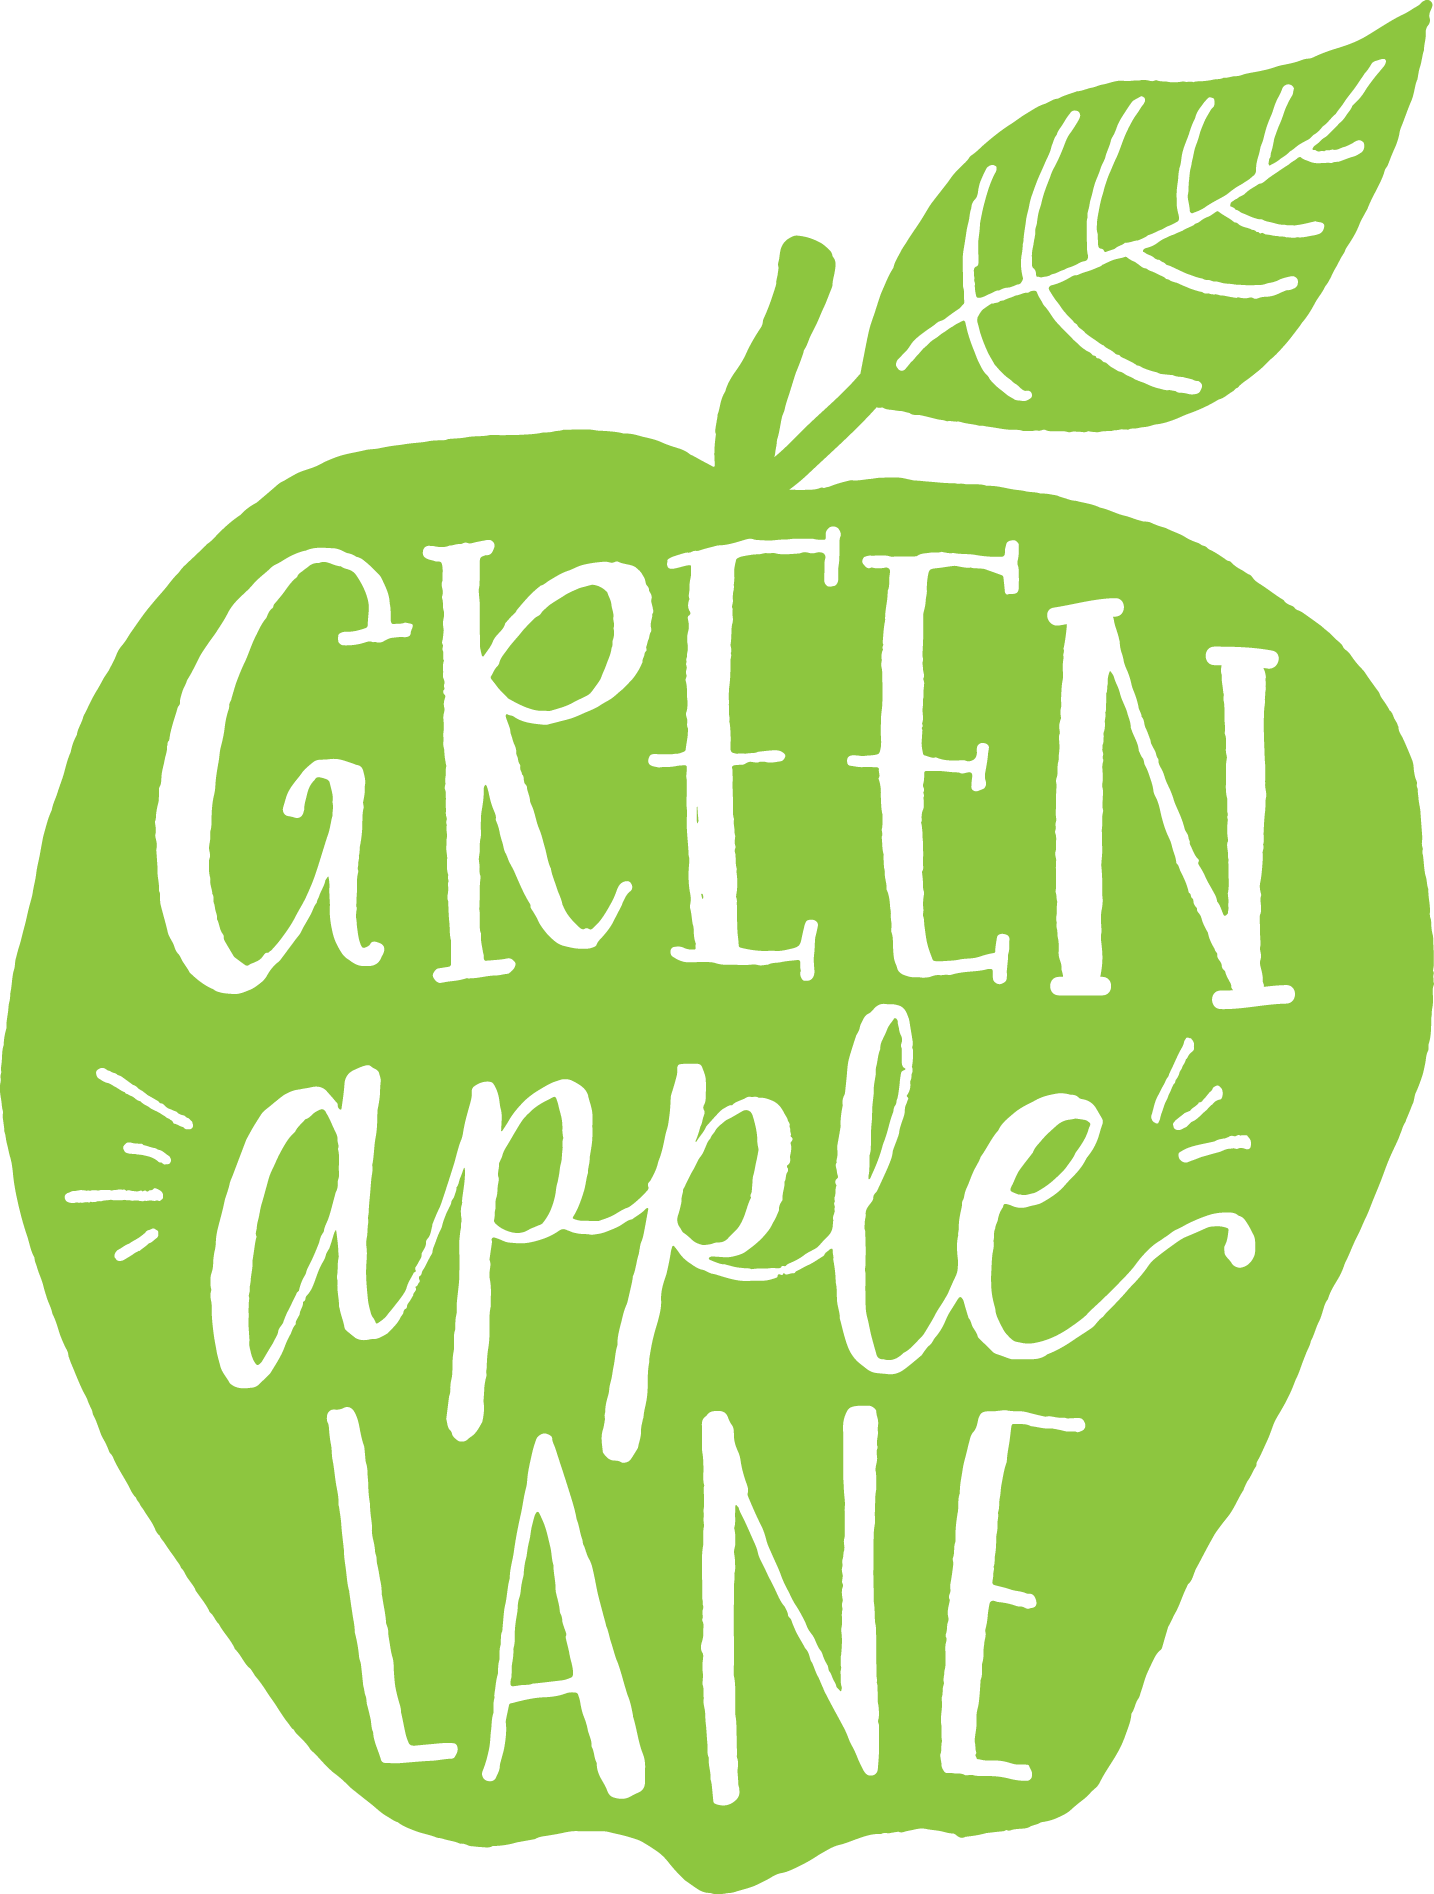 Green Apple Lane | Graphic Design Services for Your Business